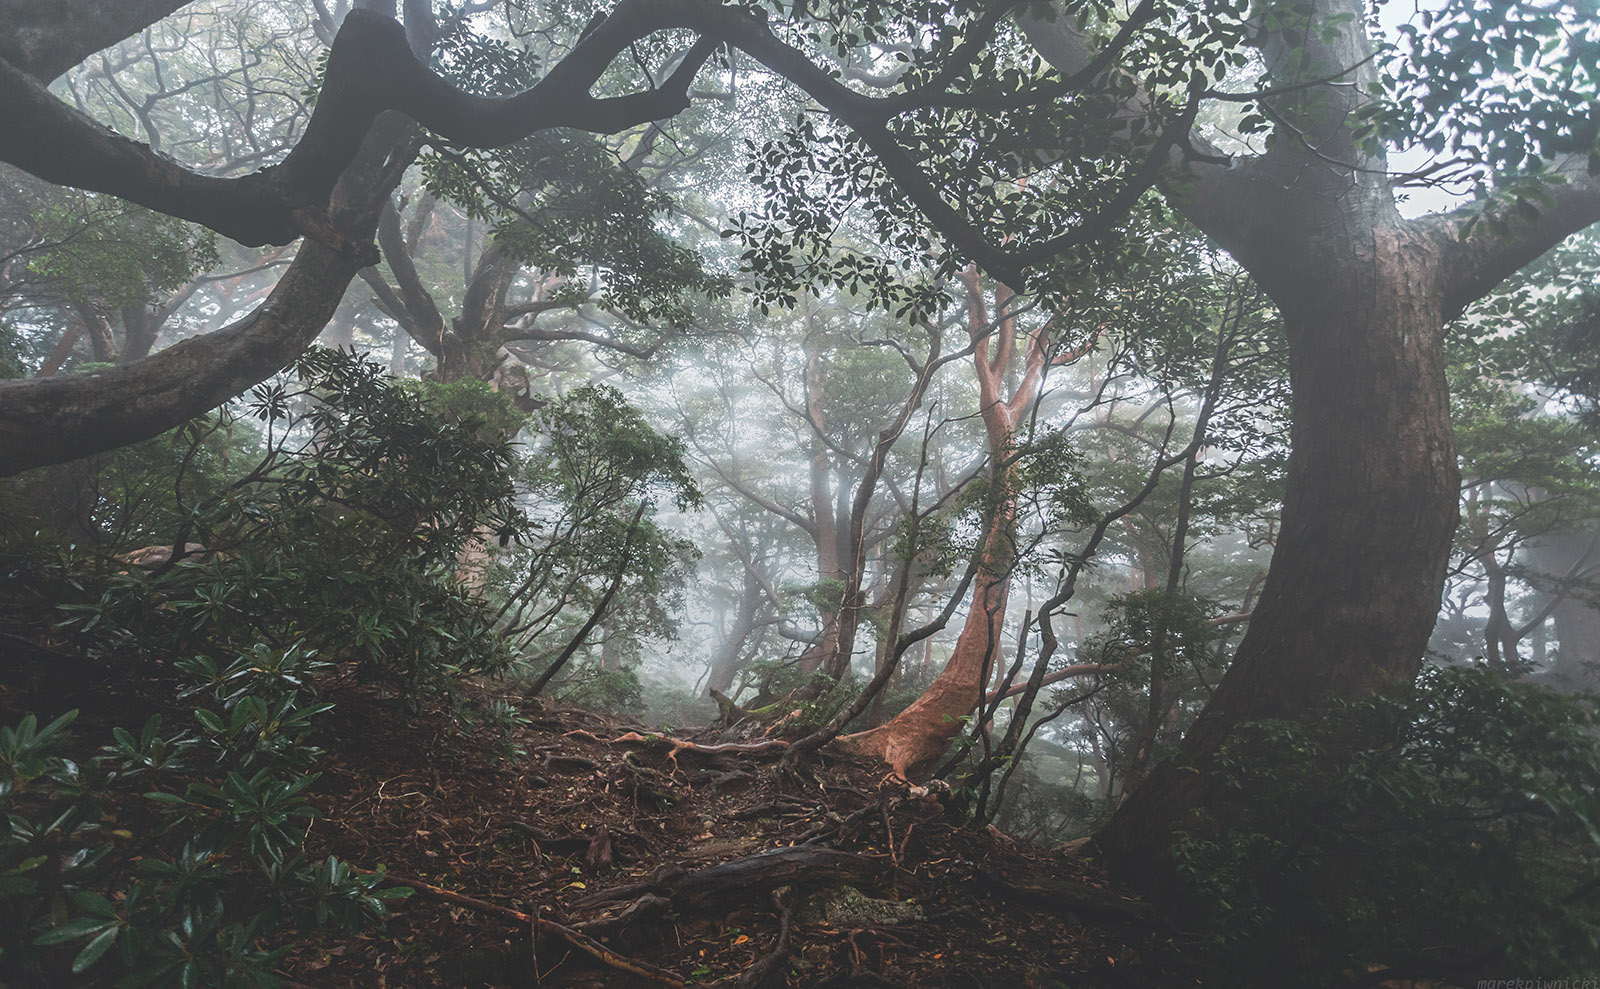 Embark on a Quest from Yakushima Island to Tokyo in the Magical Novel 'Number9Dream'